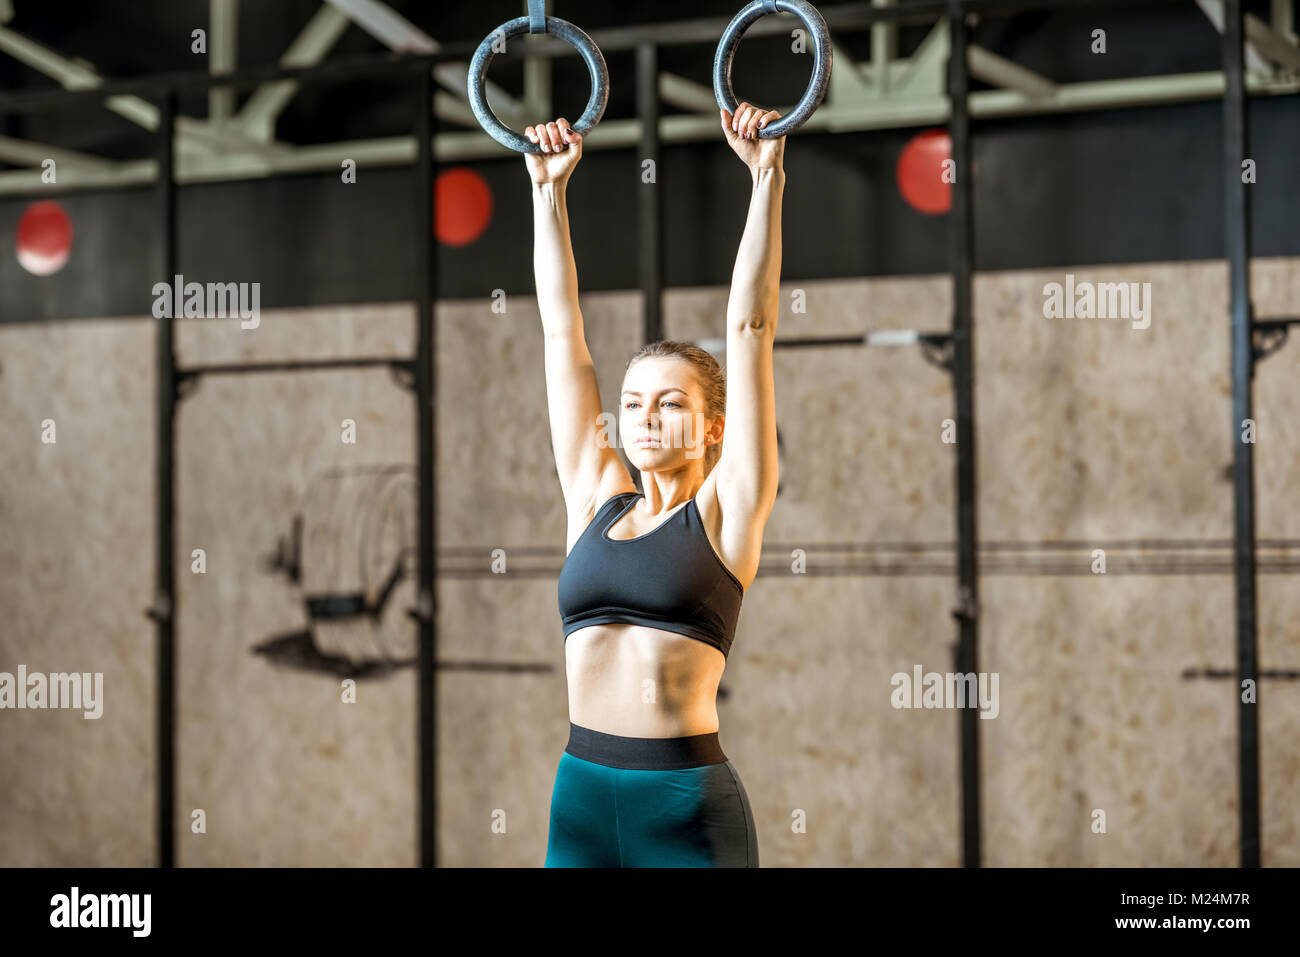 Woman training on the gymnastic rings - Stock Image